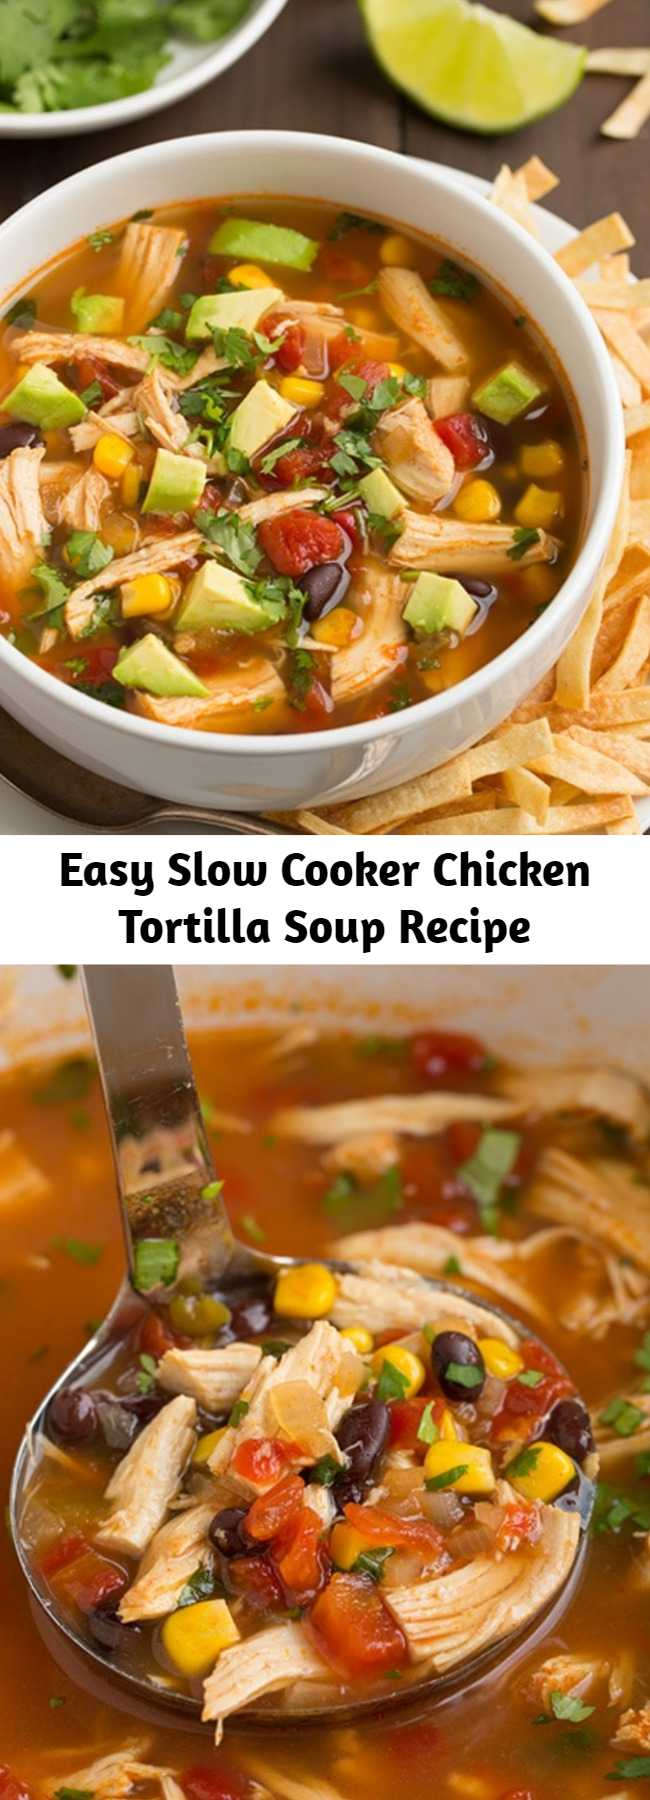 Easy Slow Cooker Chicken Tortilla Soup Recipe - A flavorful, hearty and comforting Chicken Tortilla Soup made easy with the slow cooker! It's perfect for serving year round but it's especially satisfying on a chili day. Just be sure to load on those toppings!